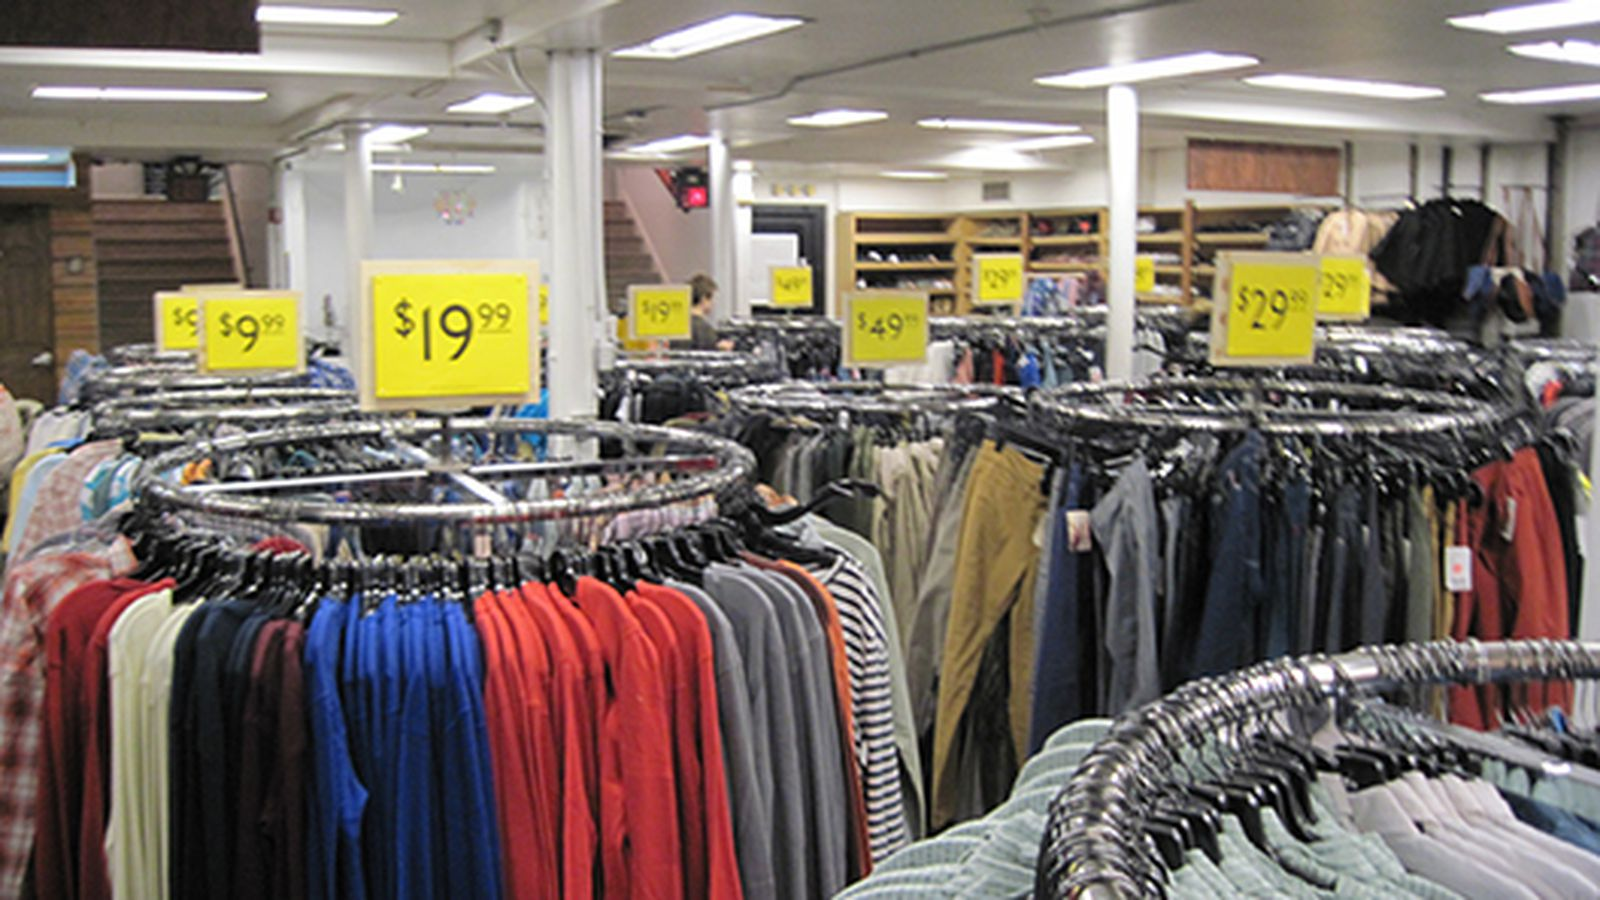 Deal Alert Harvard Squares Urban Outfitters Has A Bargain - Bargain basement stores